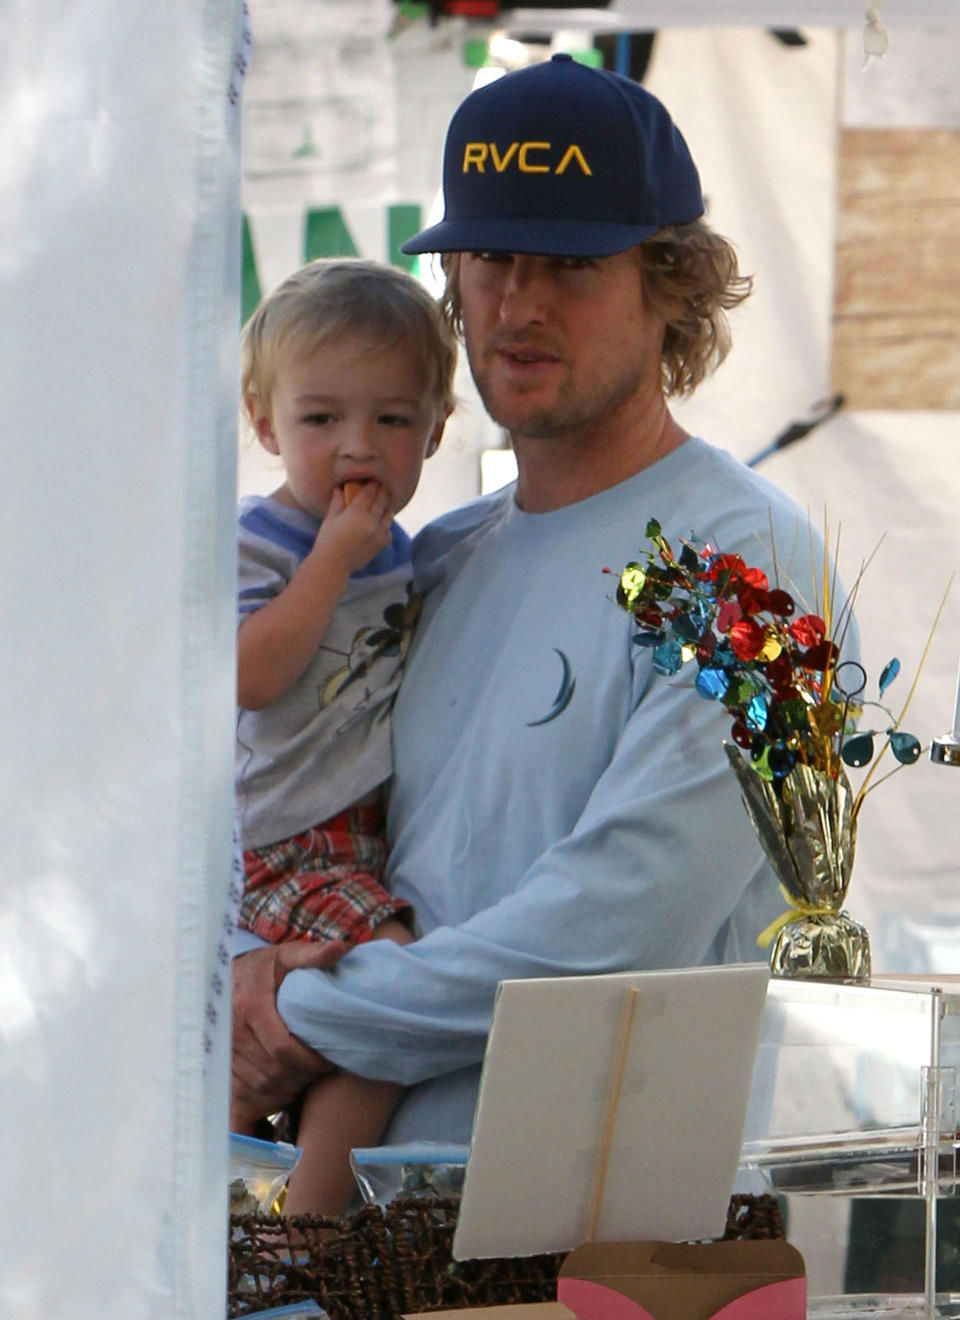 celebs-who-want-their-kids-normal-7